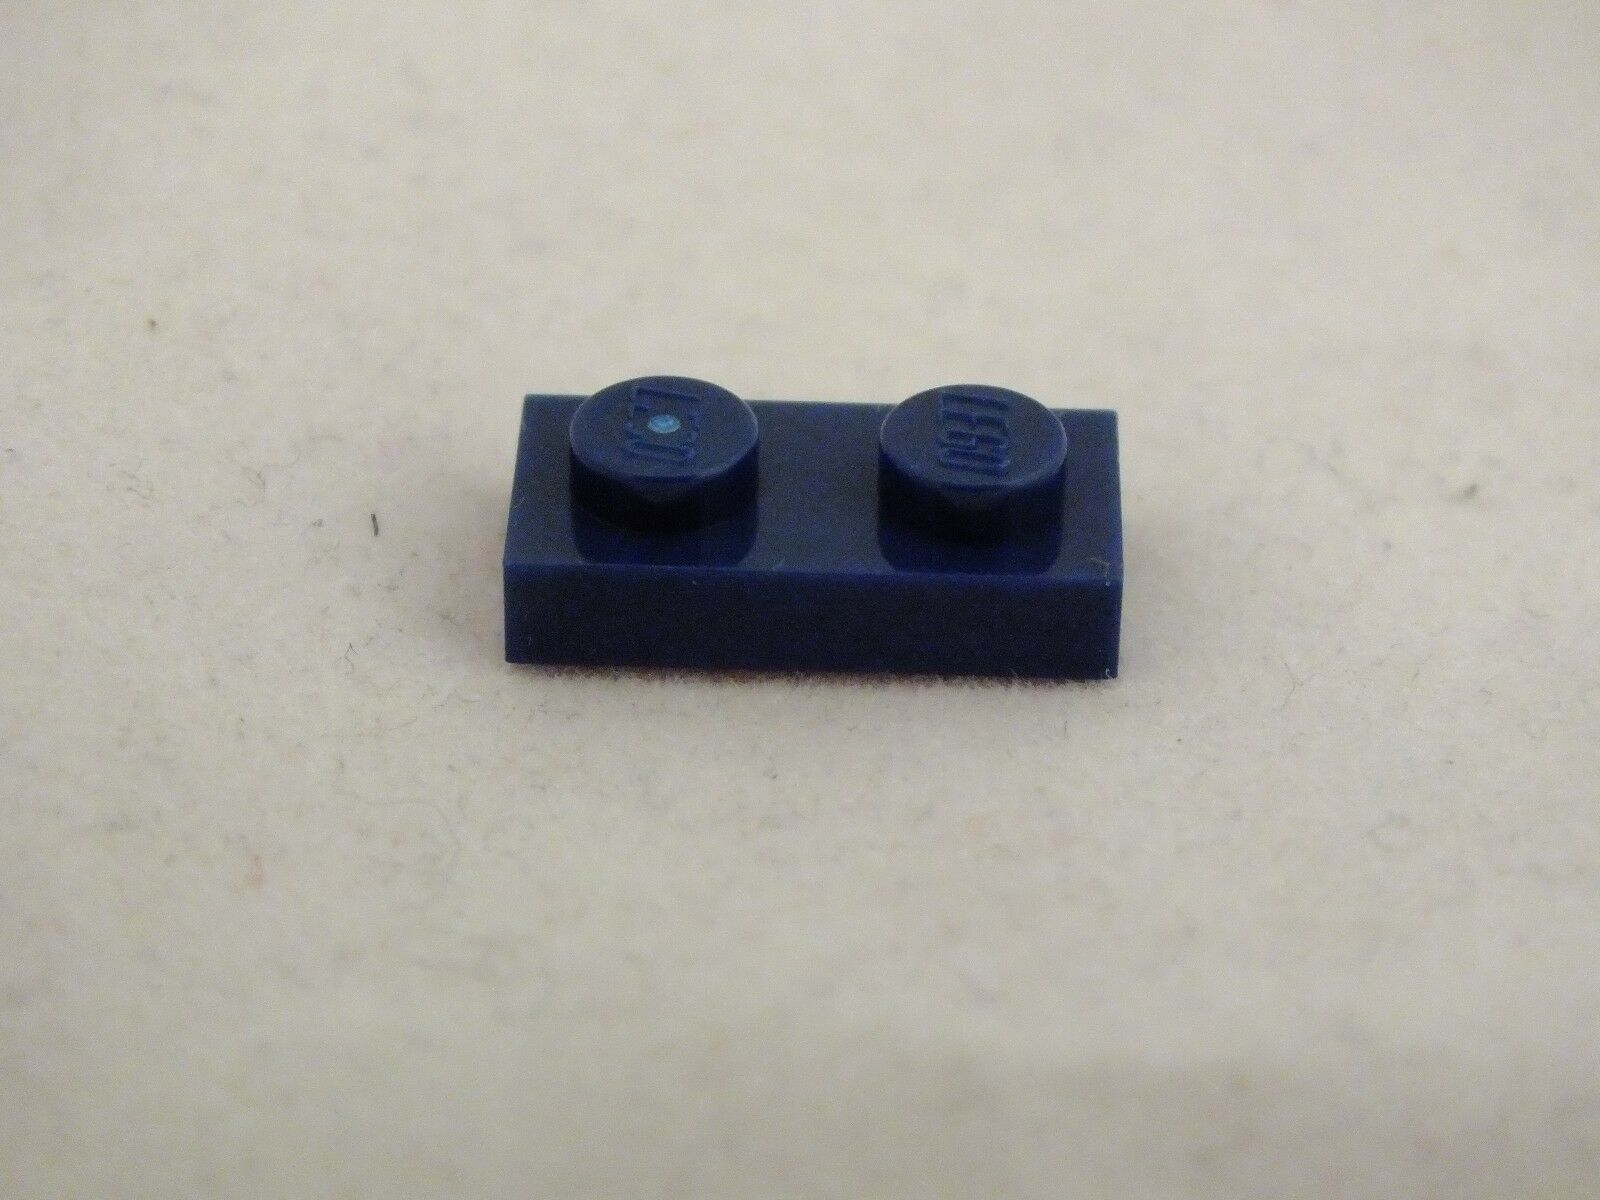 LEGO 1X2 DARK blueE FLAT PLATE BRAND NEW NEVER USED 680 PIECES